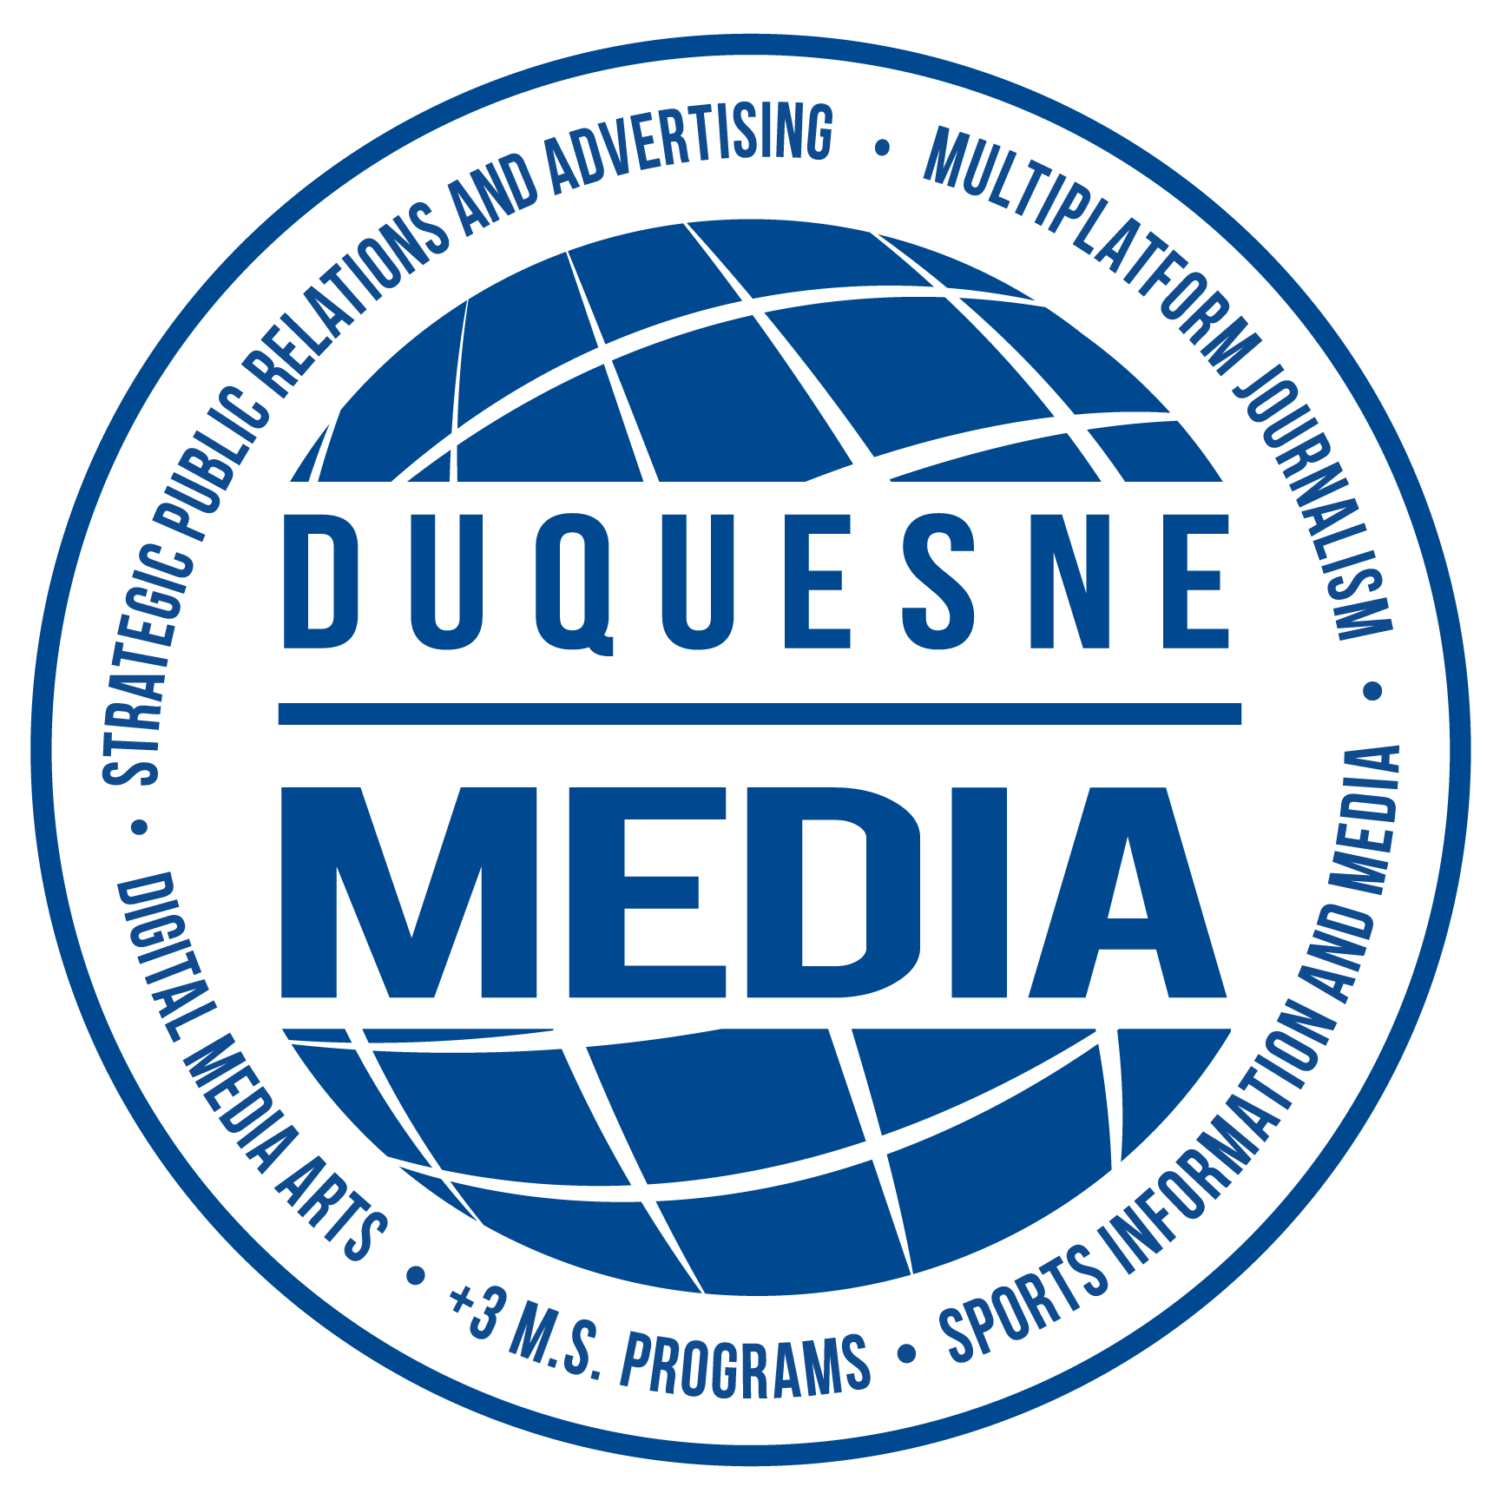 Duquesne University Multimedia